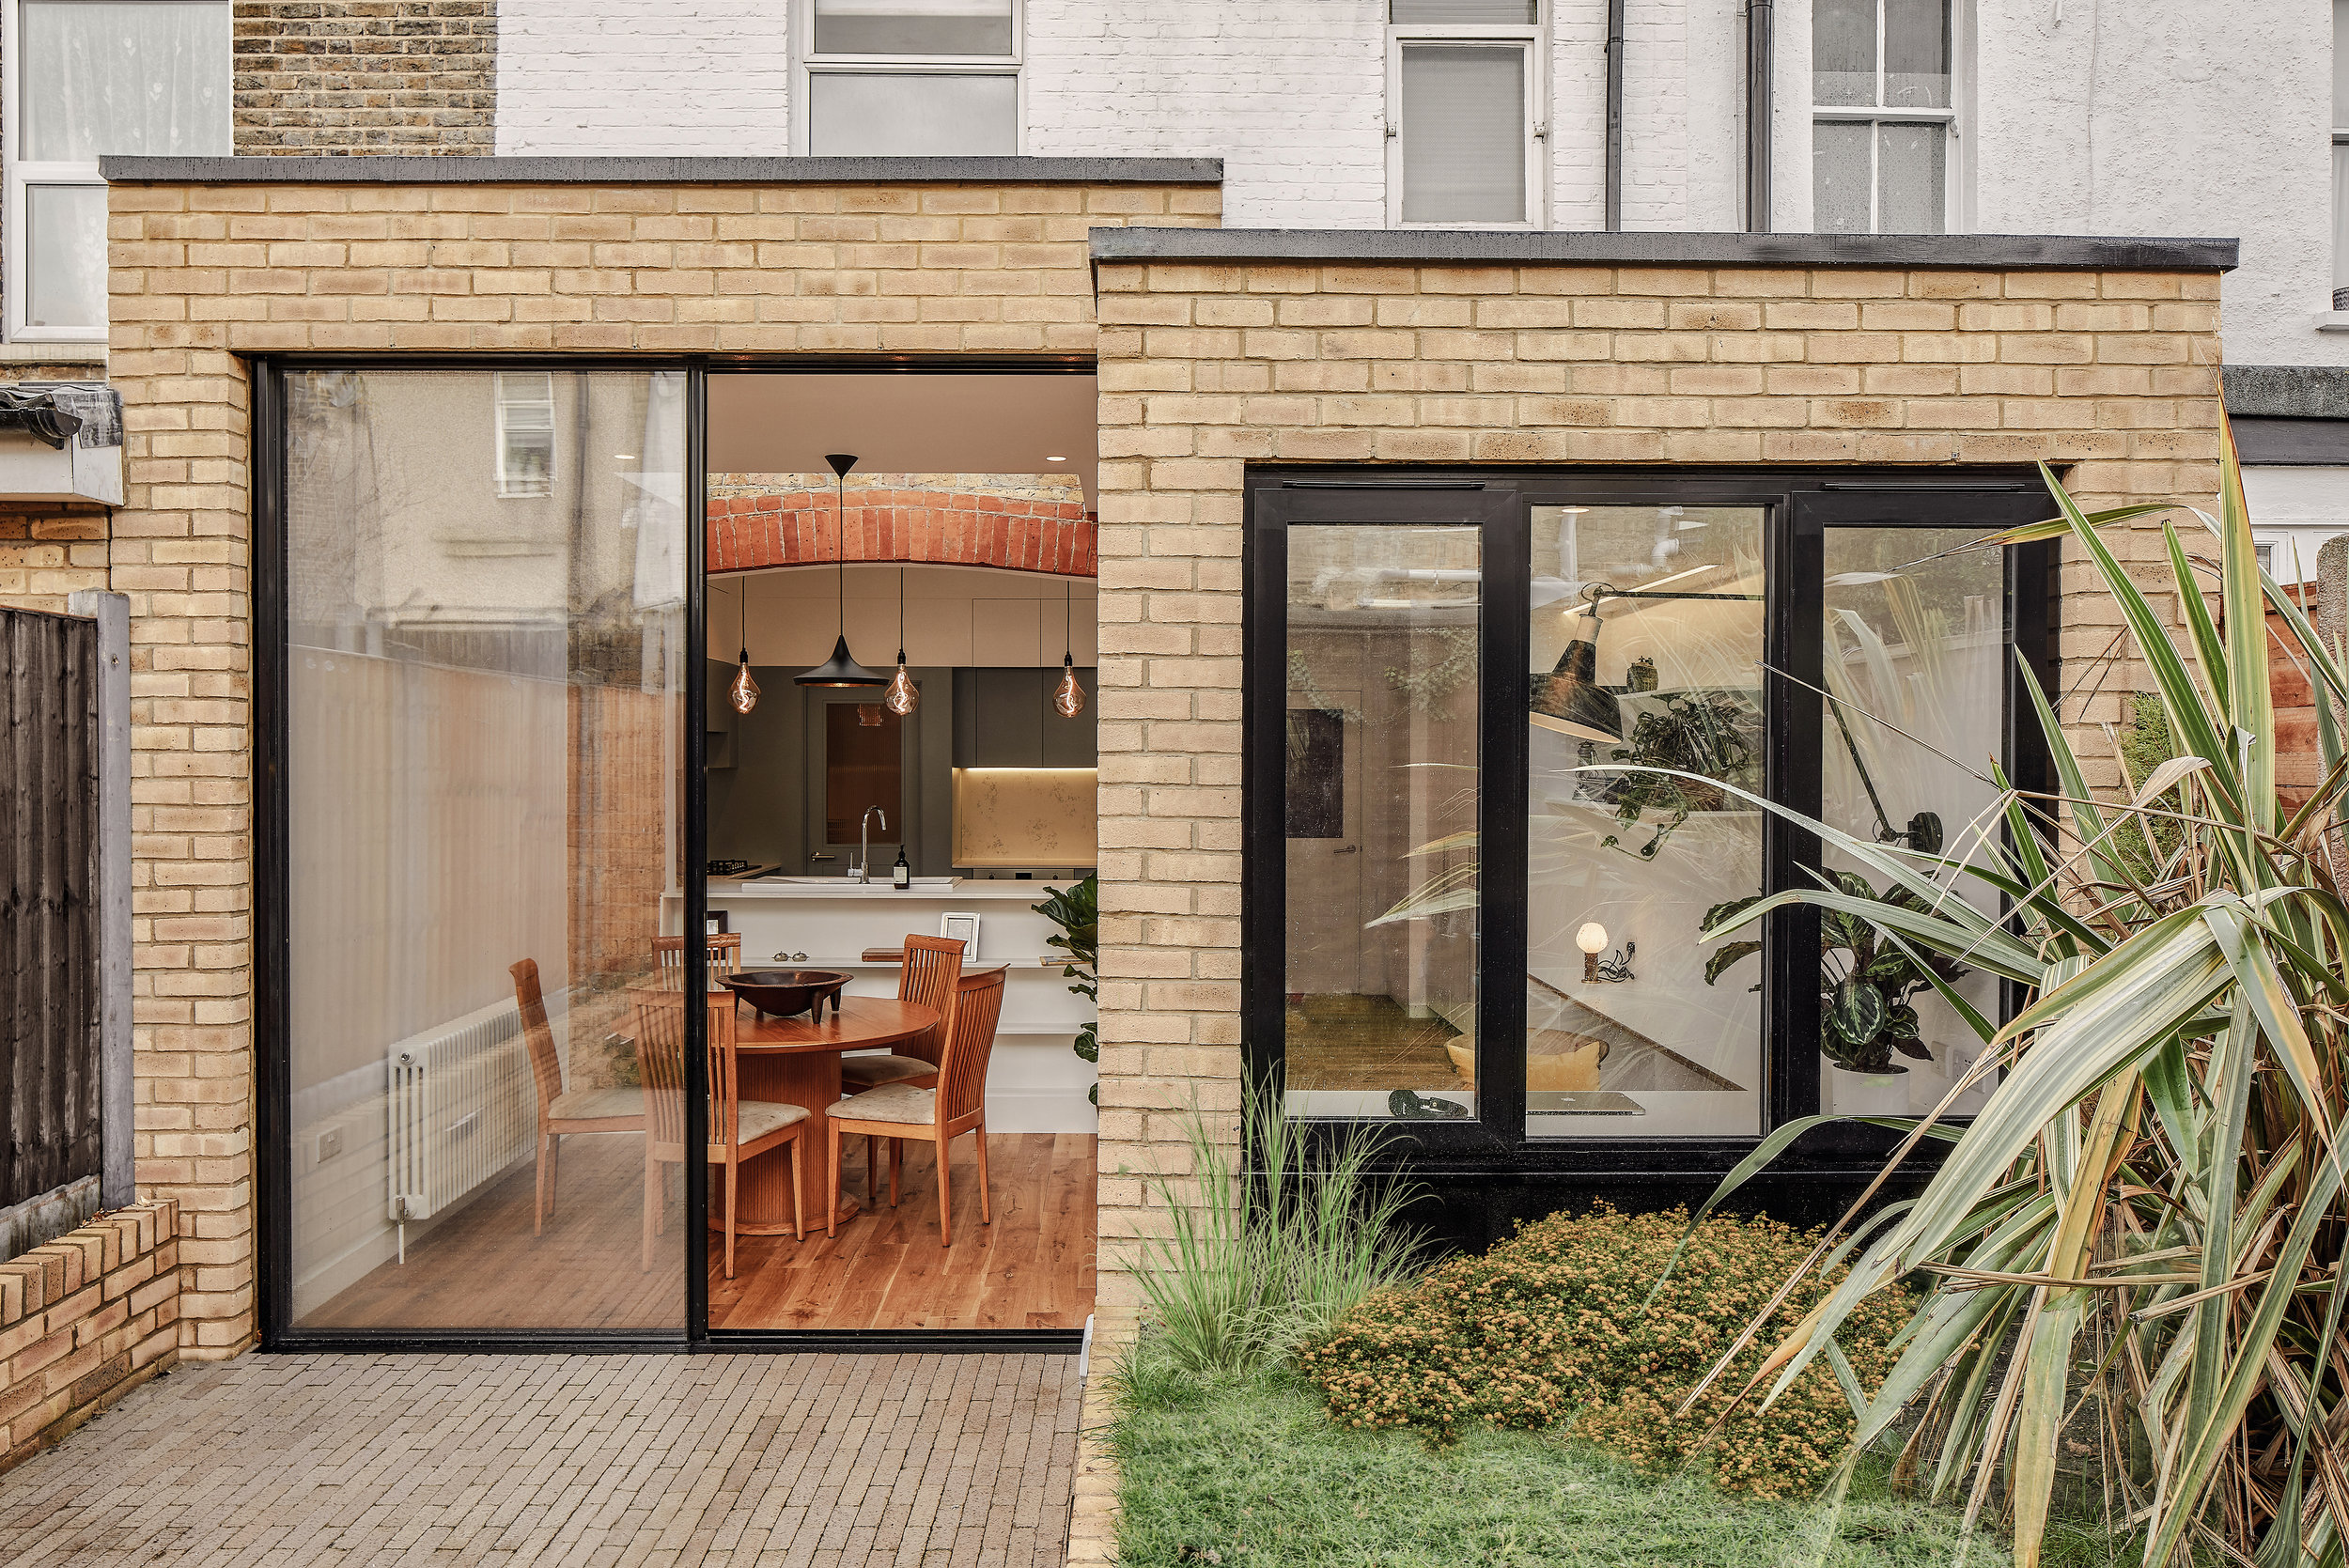 East London Architects